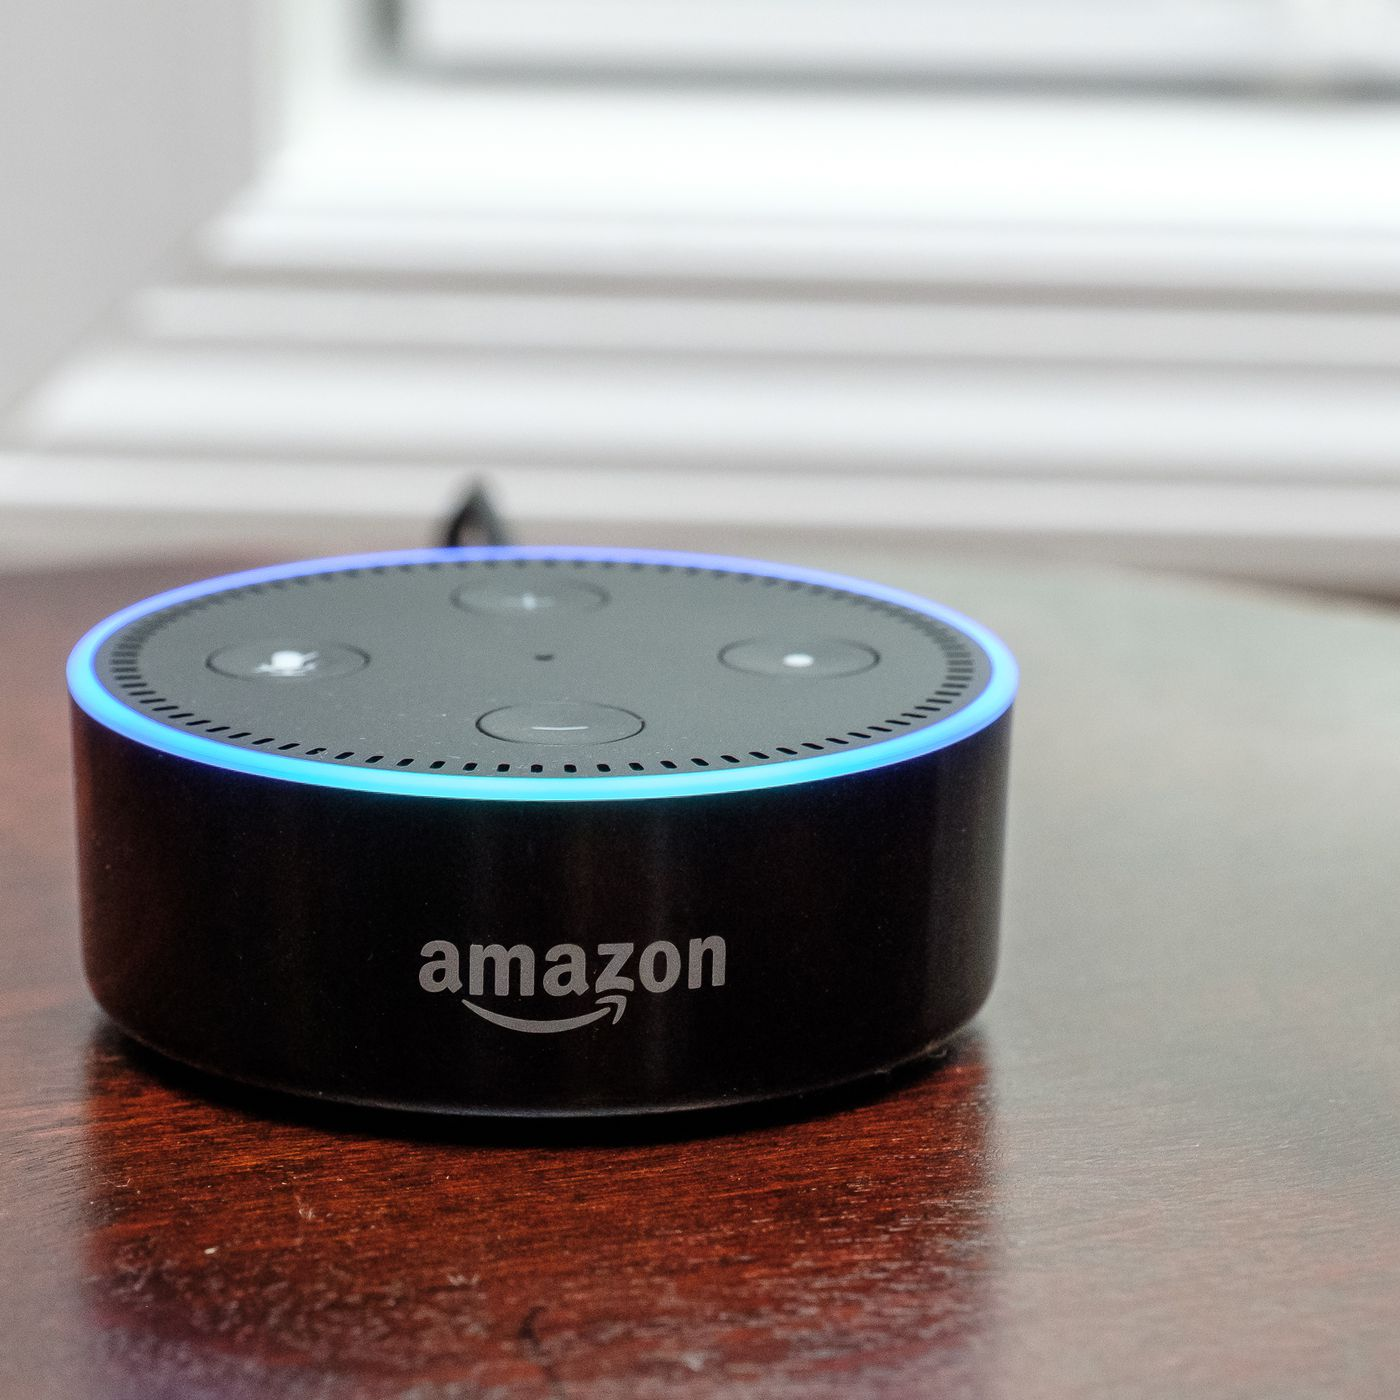 Amazon's Alexa started ordering people dollhouses after